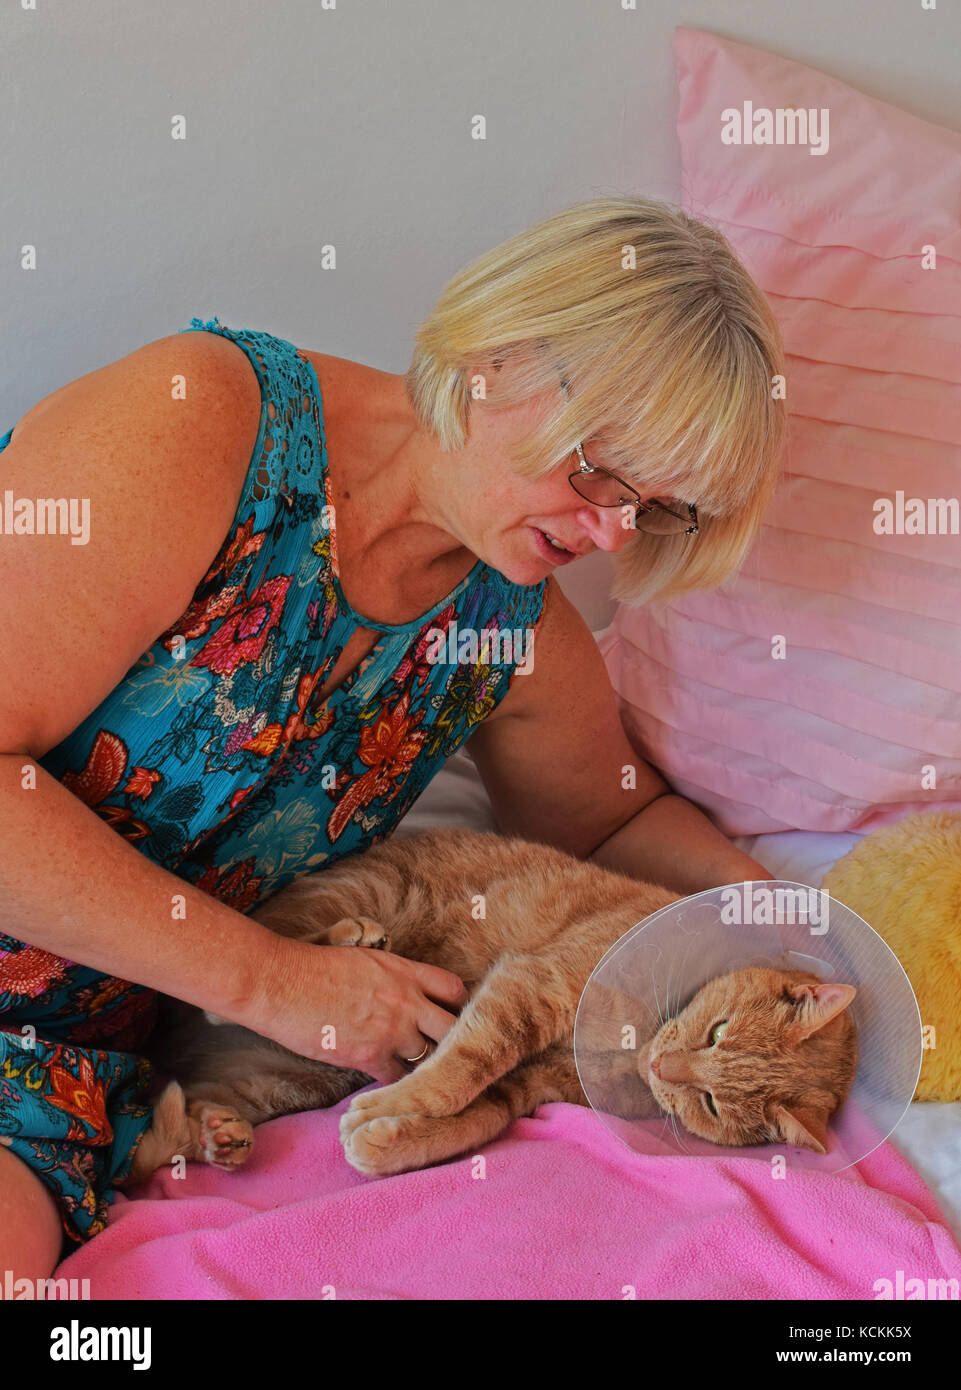 Caring for injured cat - Stock Image